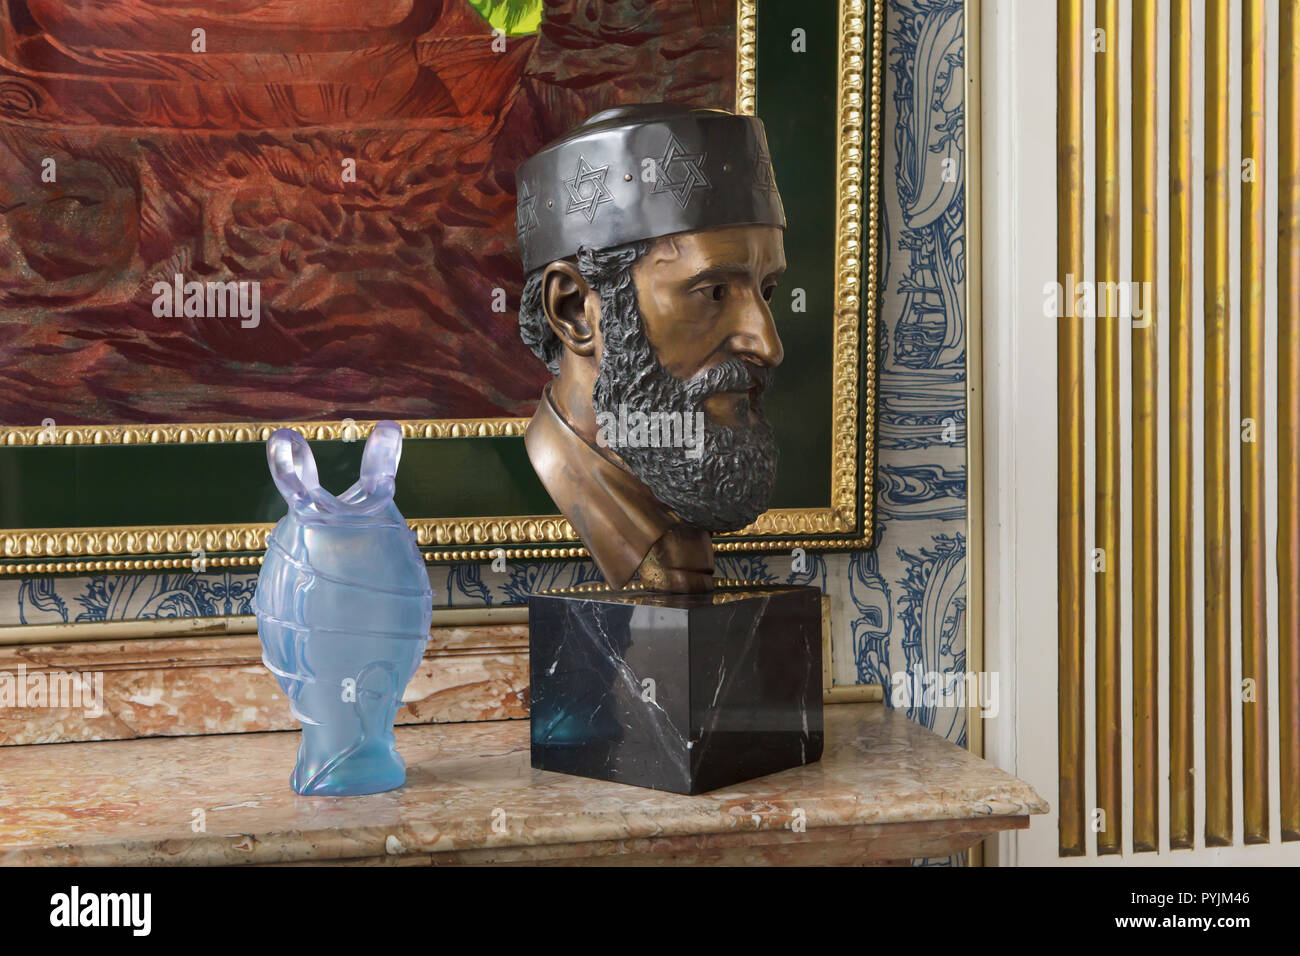 Bronze bust of Austrian artist Ernst Fuchs on display in the Blue Parlor in the Ernst Fuchs Museum in Vienna, Austria. The museum is housed in the former Wagner Villa I designed by Austrian modernist architect Otto Wagner and built in 1886-1888 in Hütteldorf district. The building was acquired and rebuilt by Ernst Fuchs in the 1970s. - Stock Image